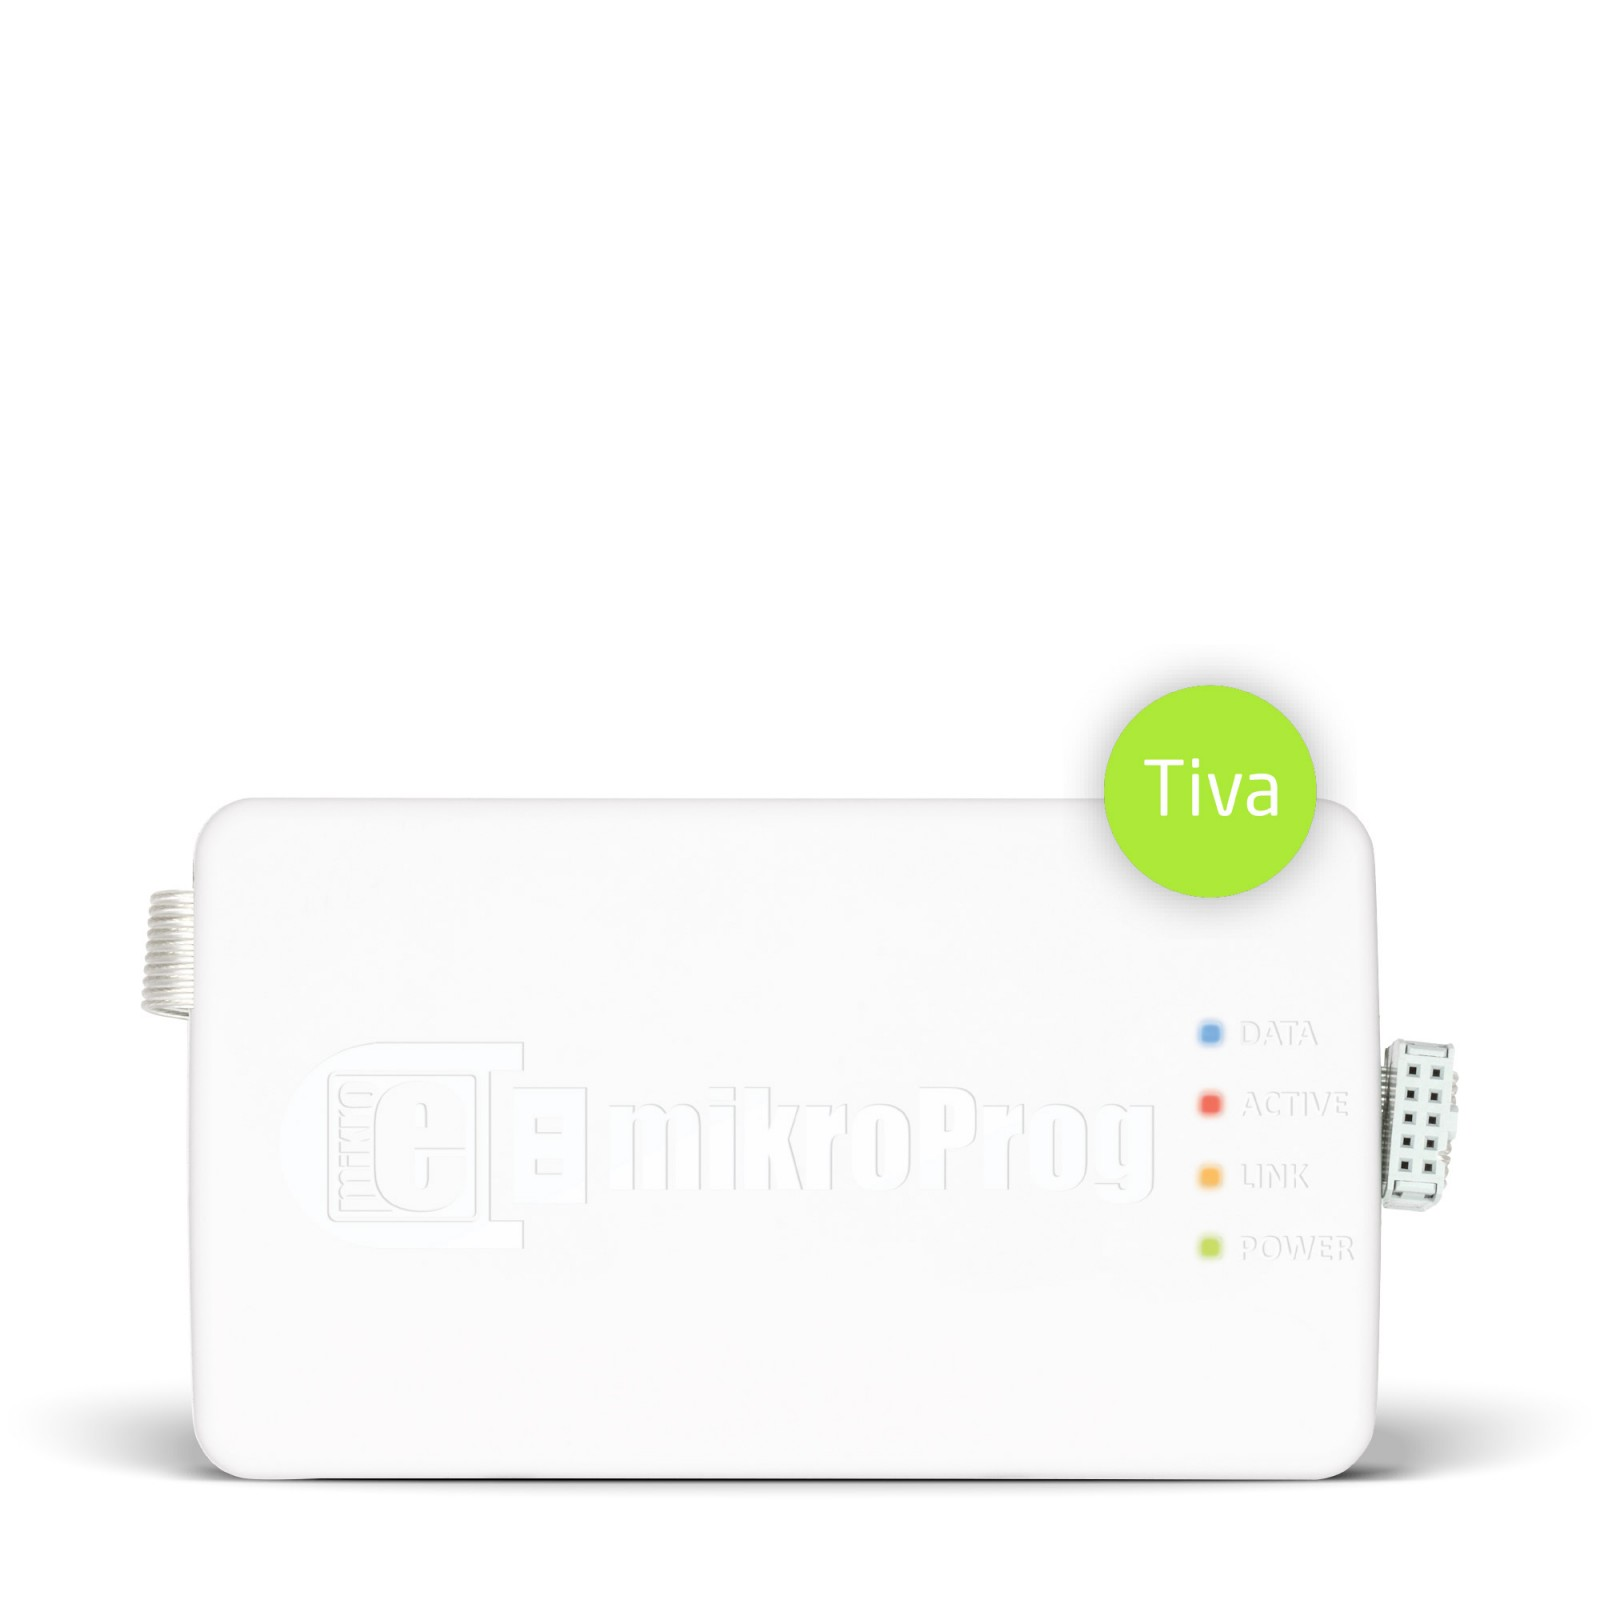 mikroProg for TIVA - ARM Cortex-M4 and M3 USB Programmer